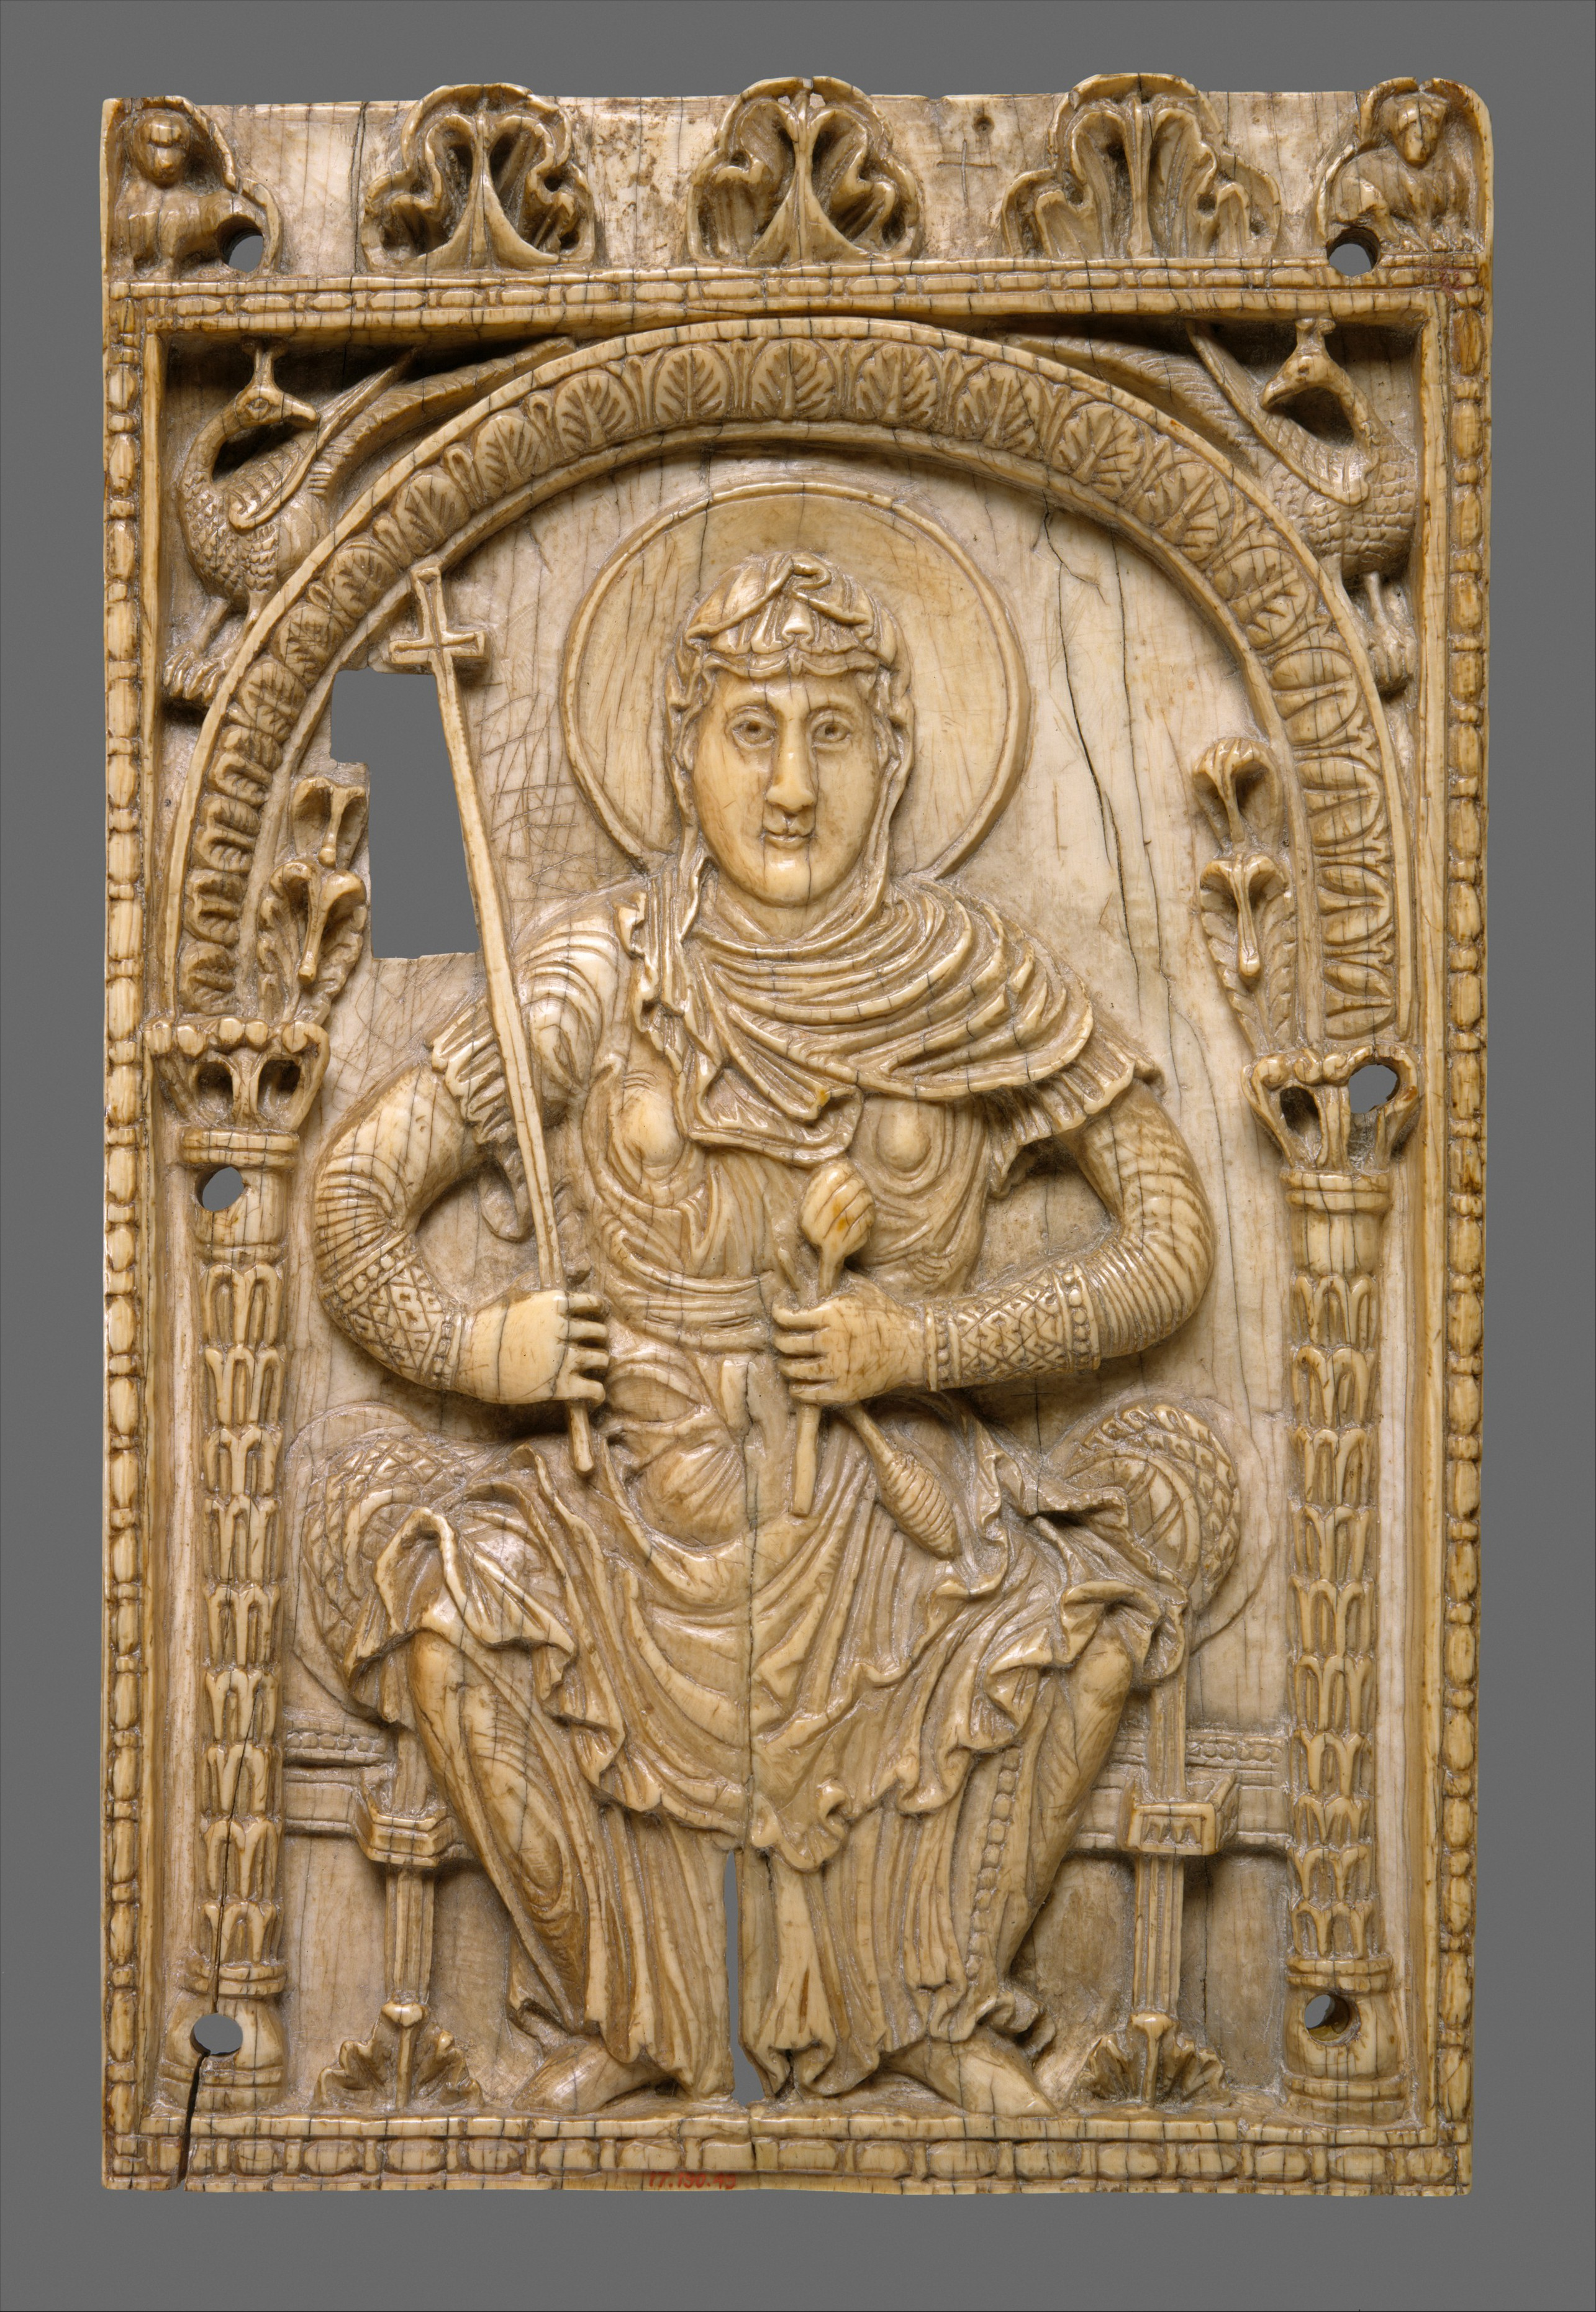 plaque with the virgin mary as a personification of the